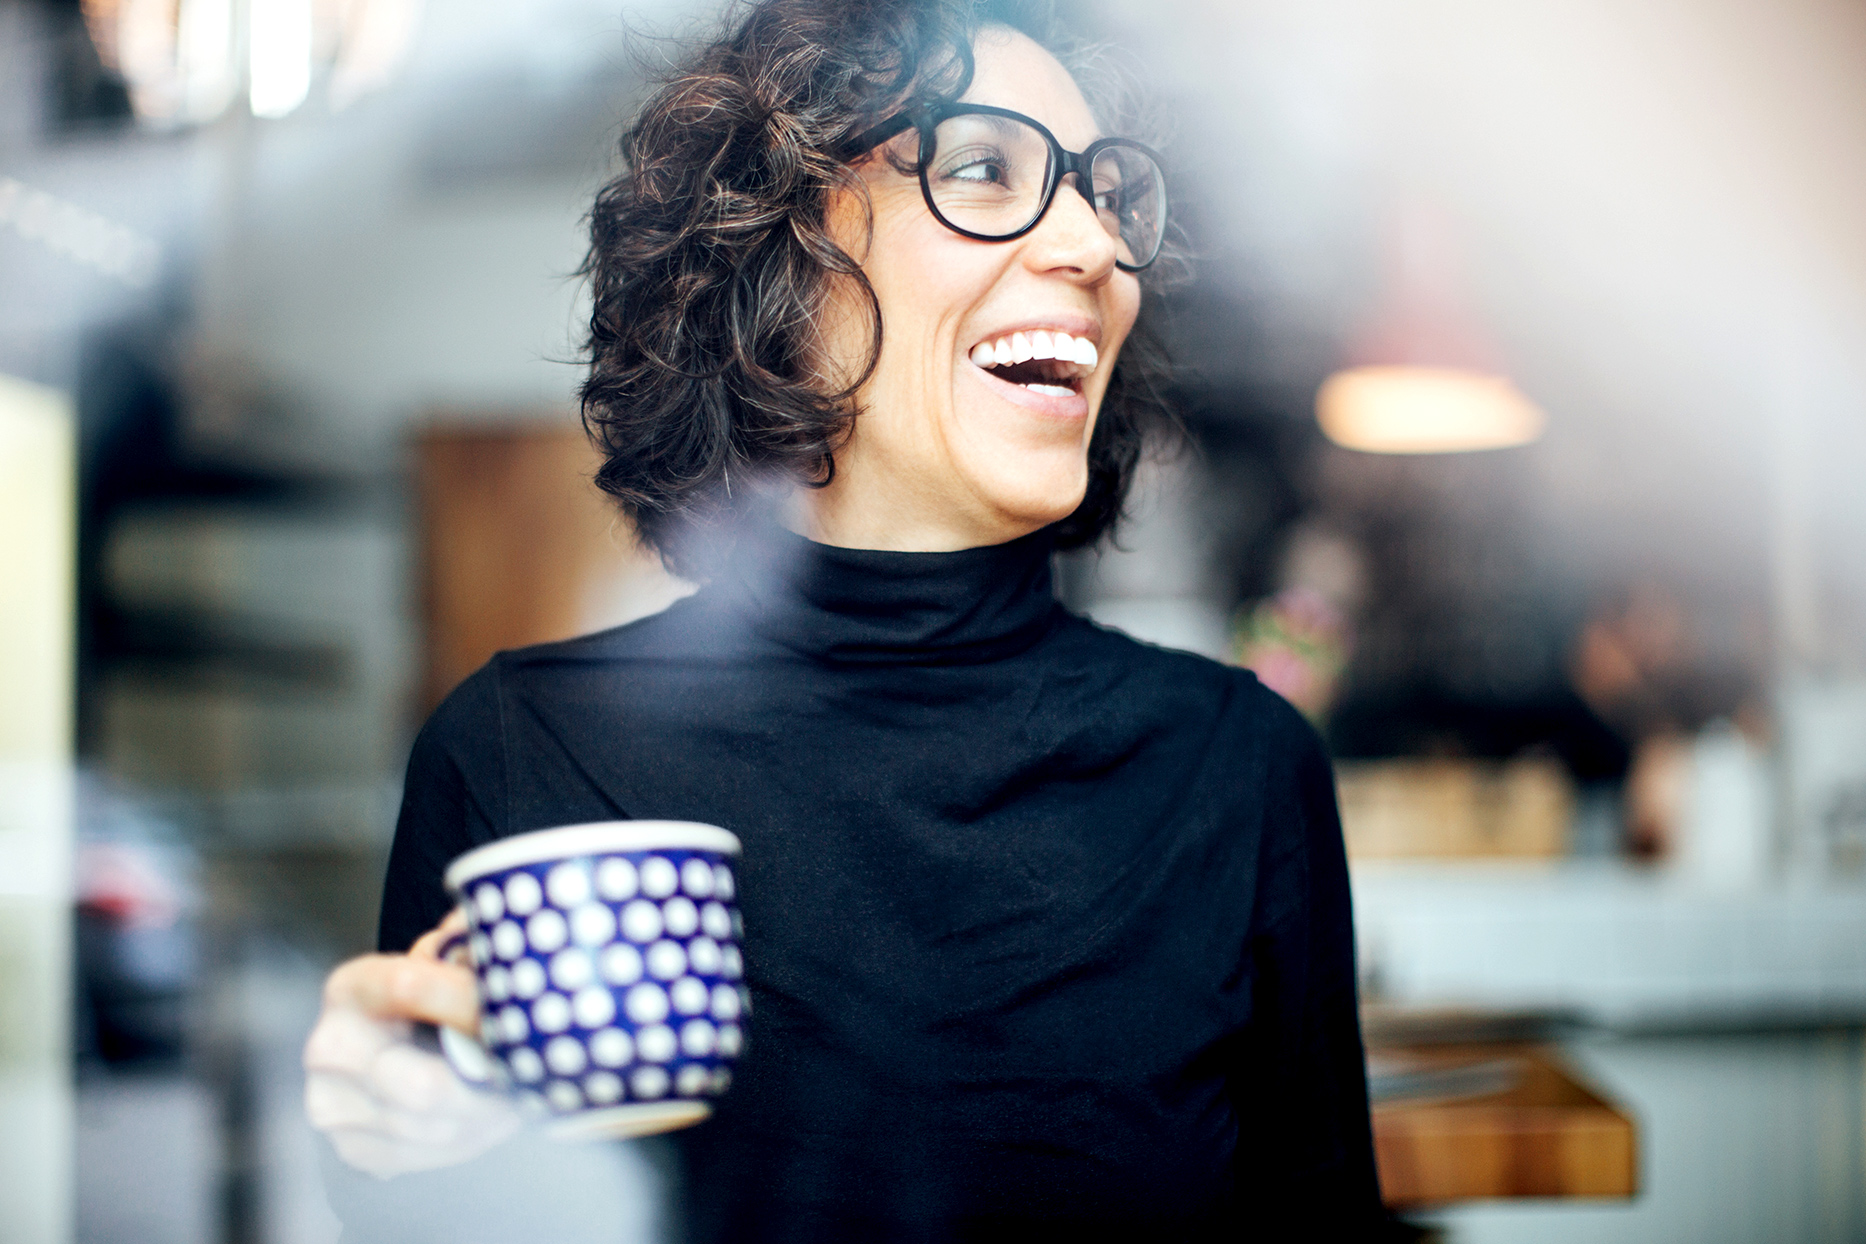 person holding coffee cup laughing